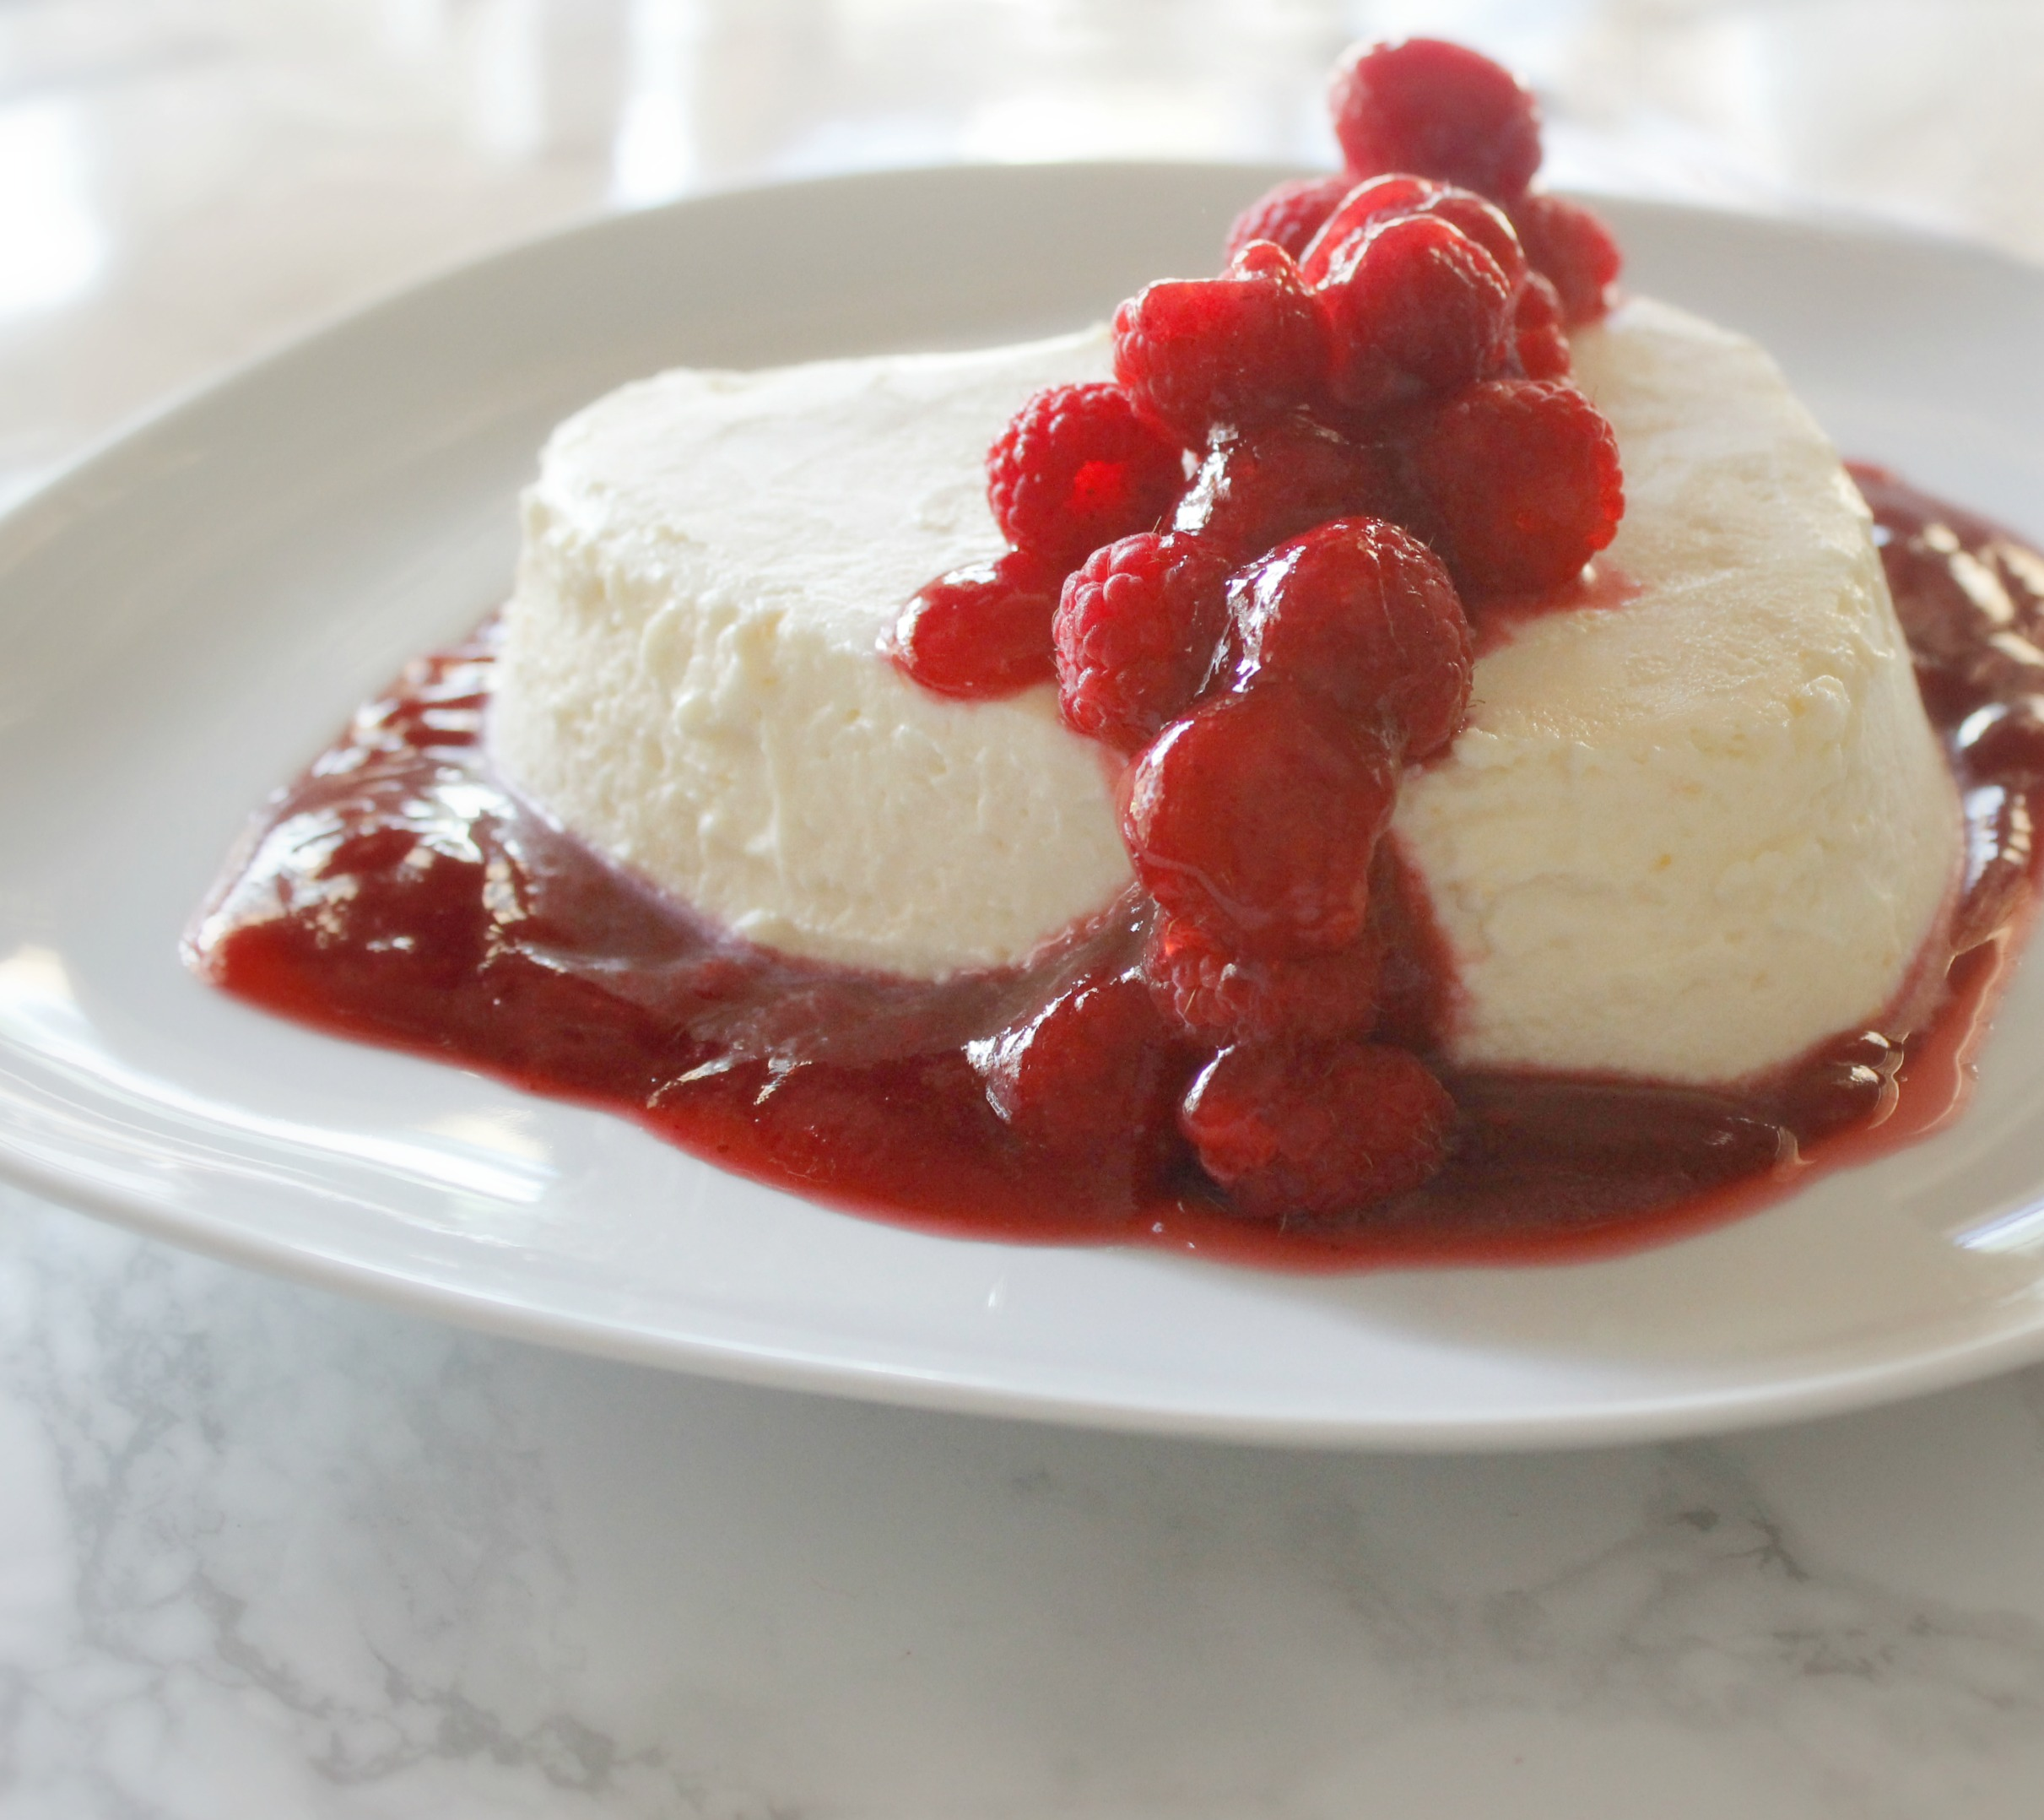 Coeur-a-la-creme-with-raspberries.jpg